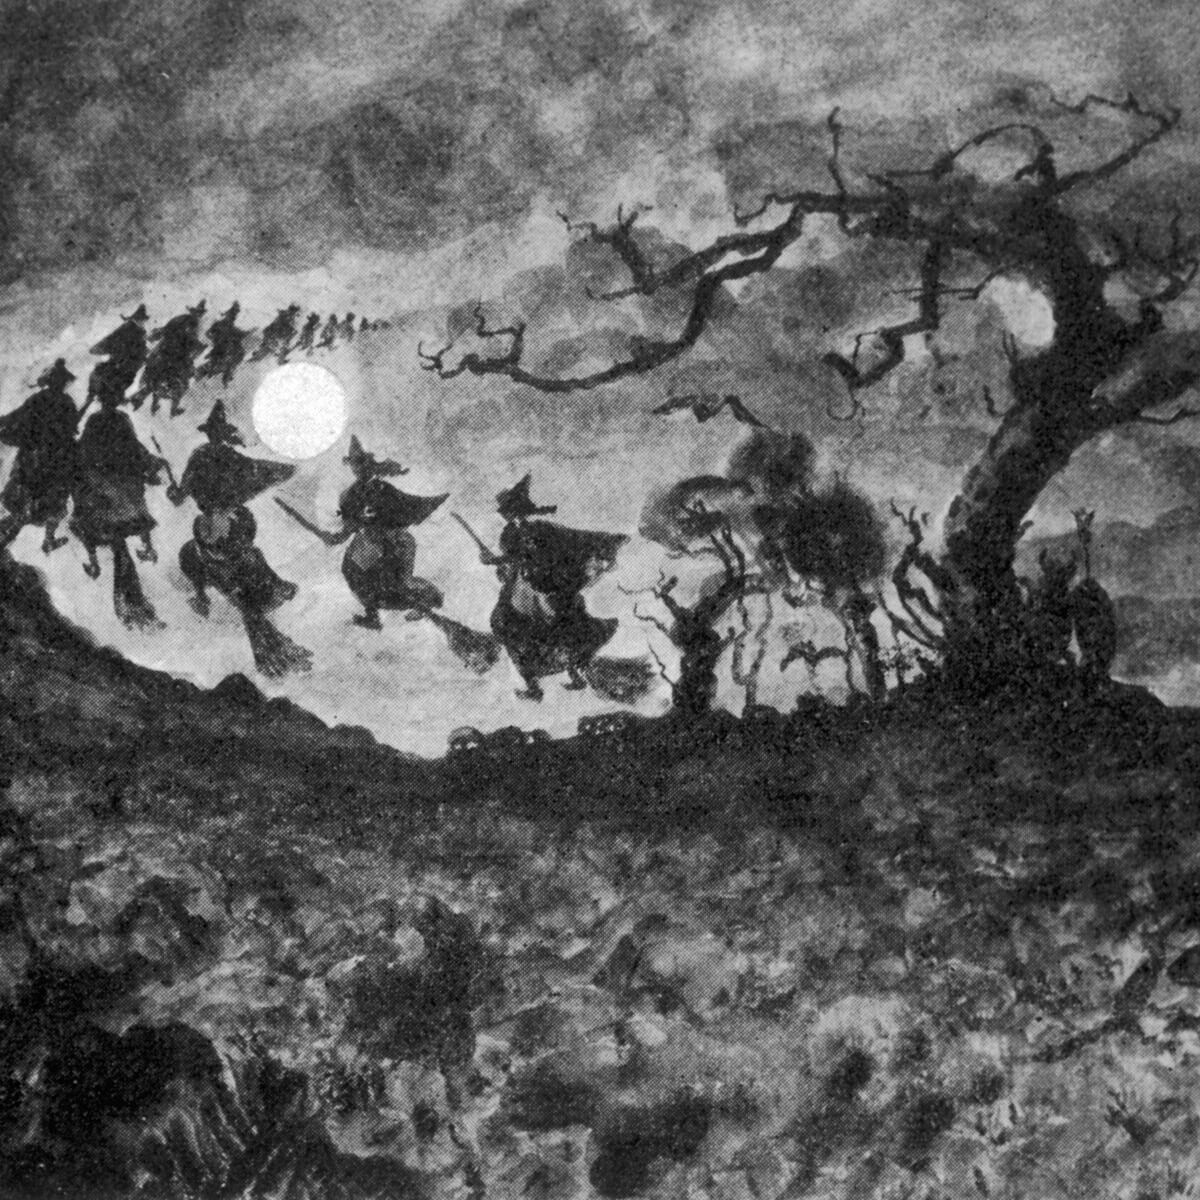 Pendle Witches Eerie Escape